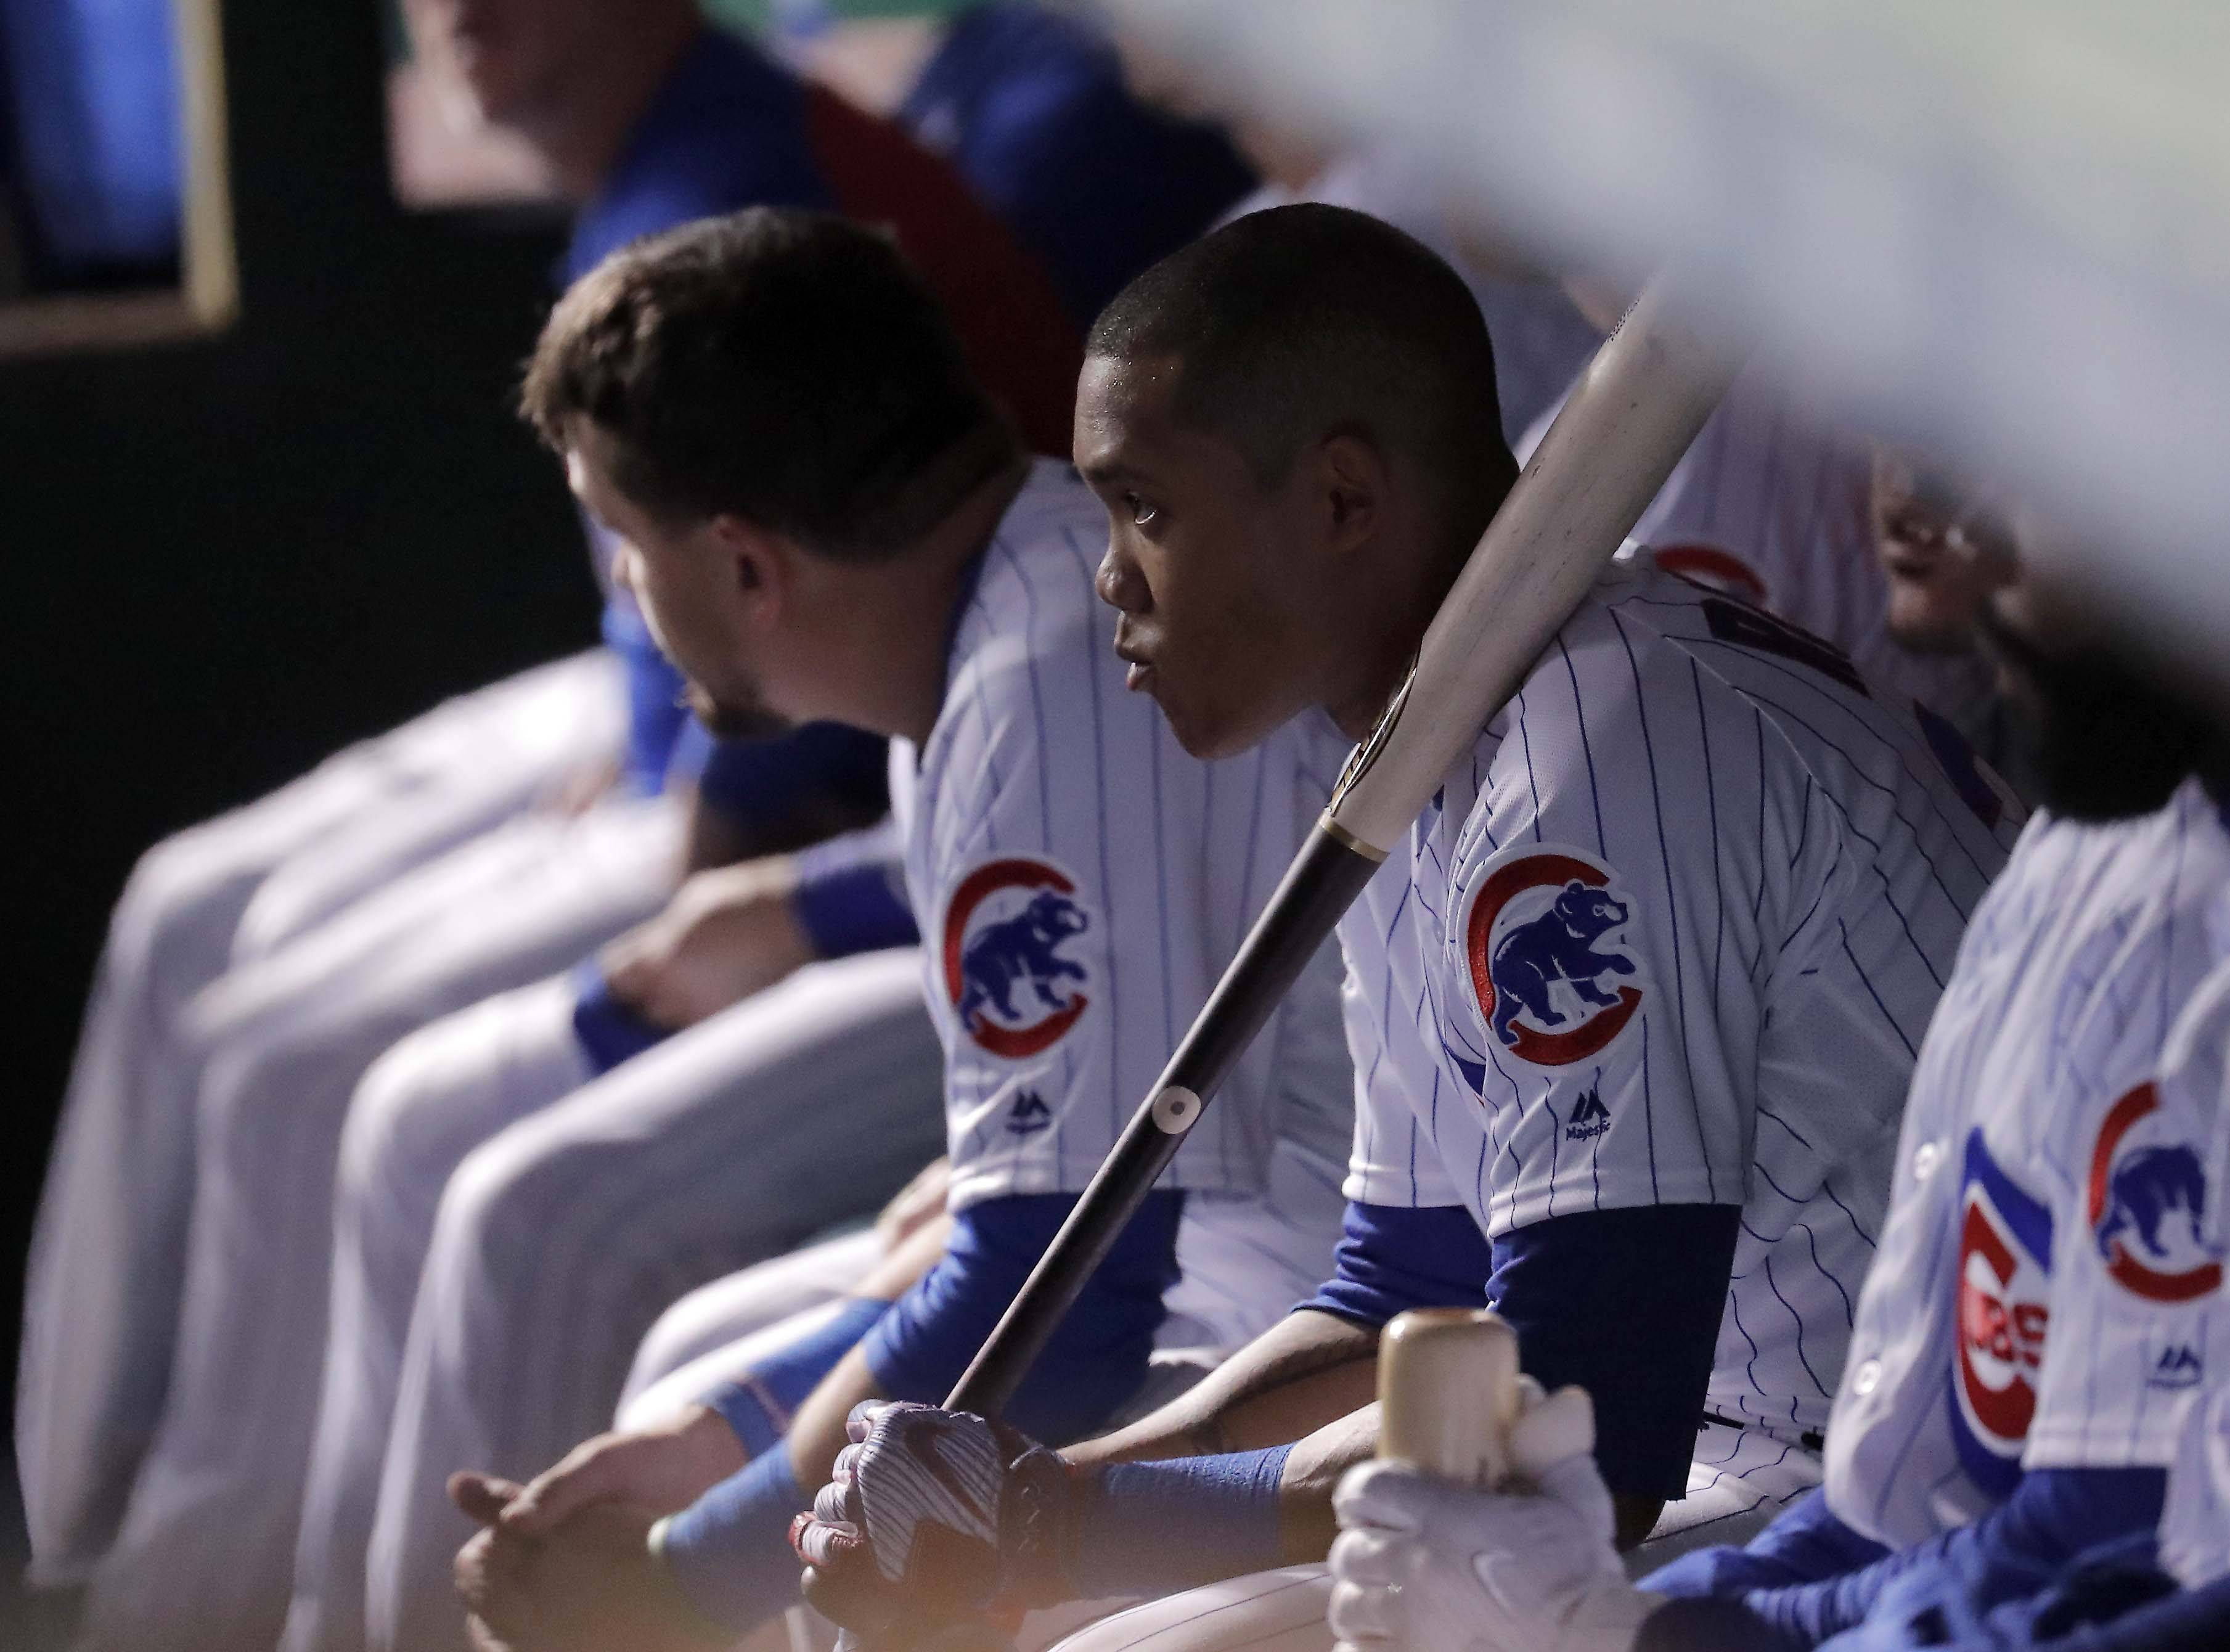 Chicago Cubs shortstop Addison Russell looks dejected in the dugout as Game 5 of the National League Championship Series Thursday at Wrigley Field in Chicago comes to an end.